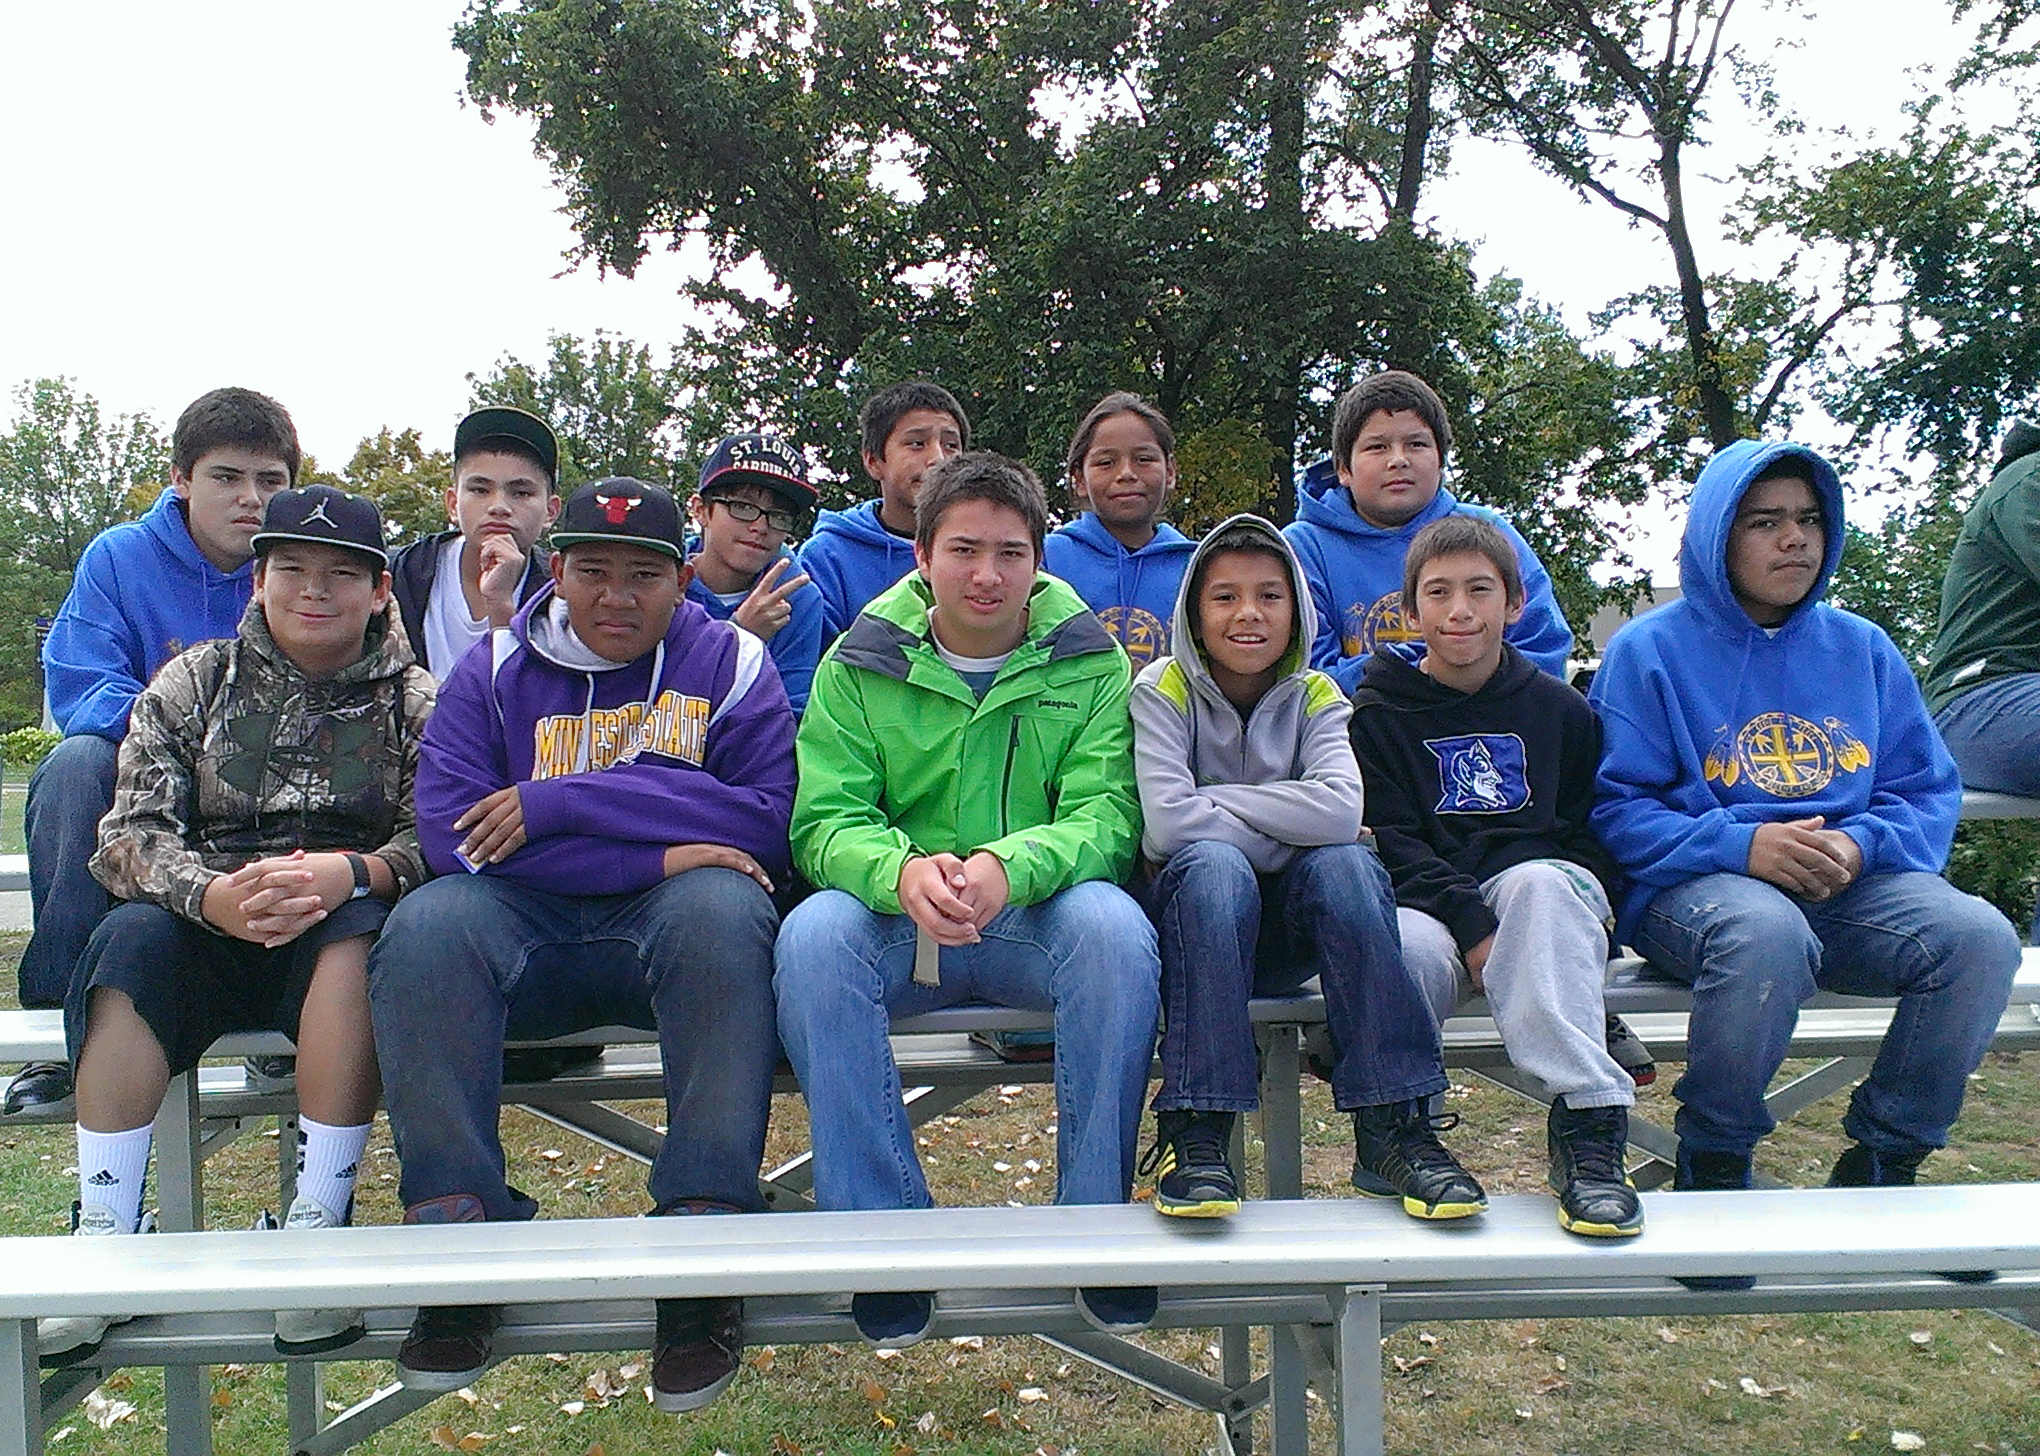 The Lakota boys at a South Dakota State football game.